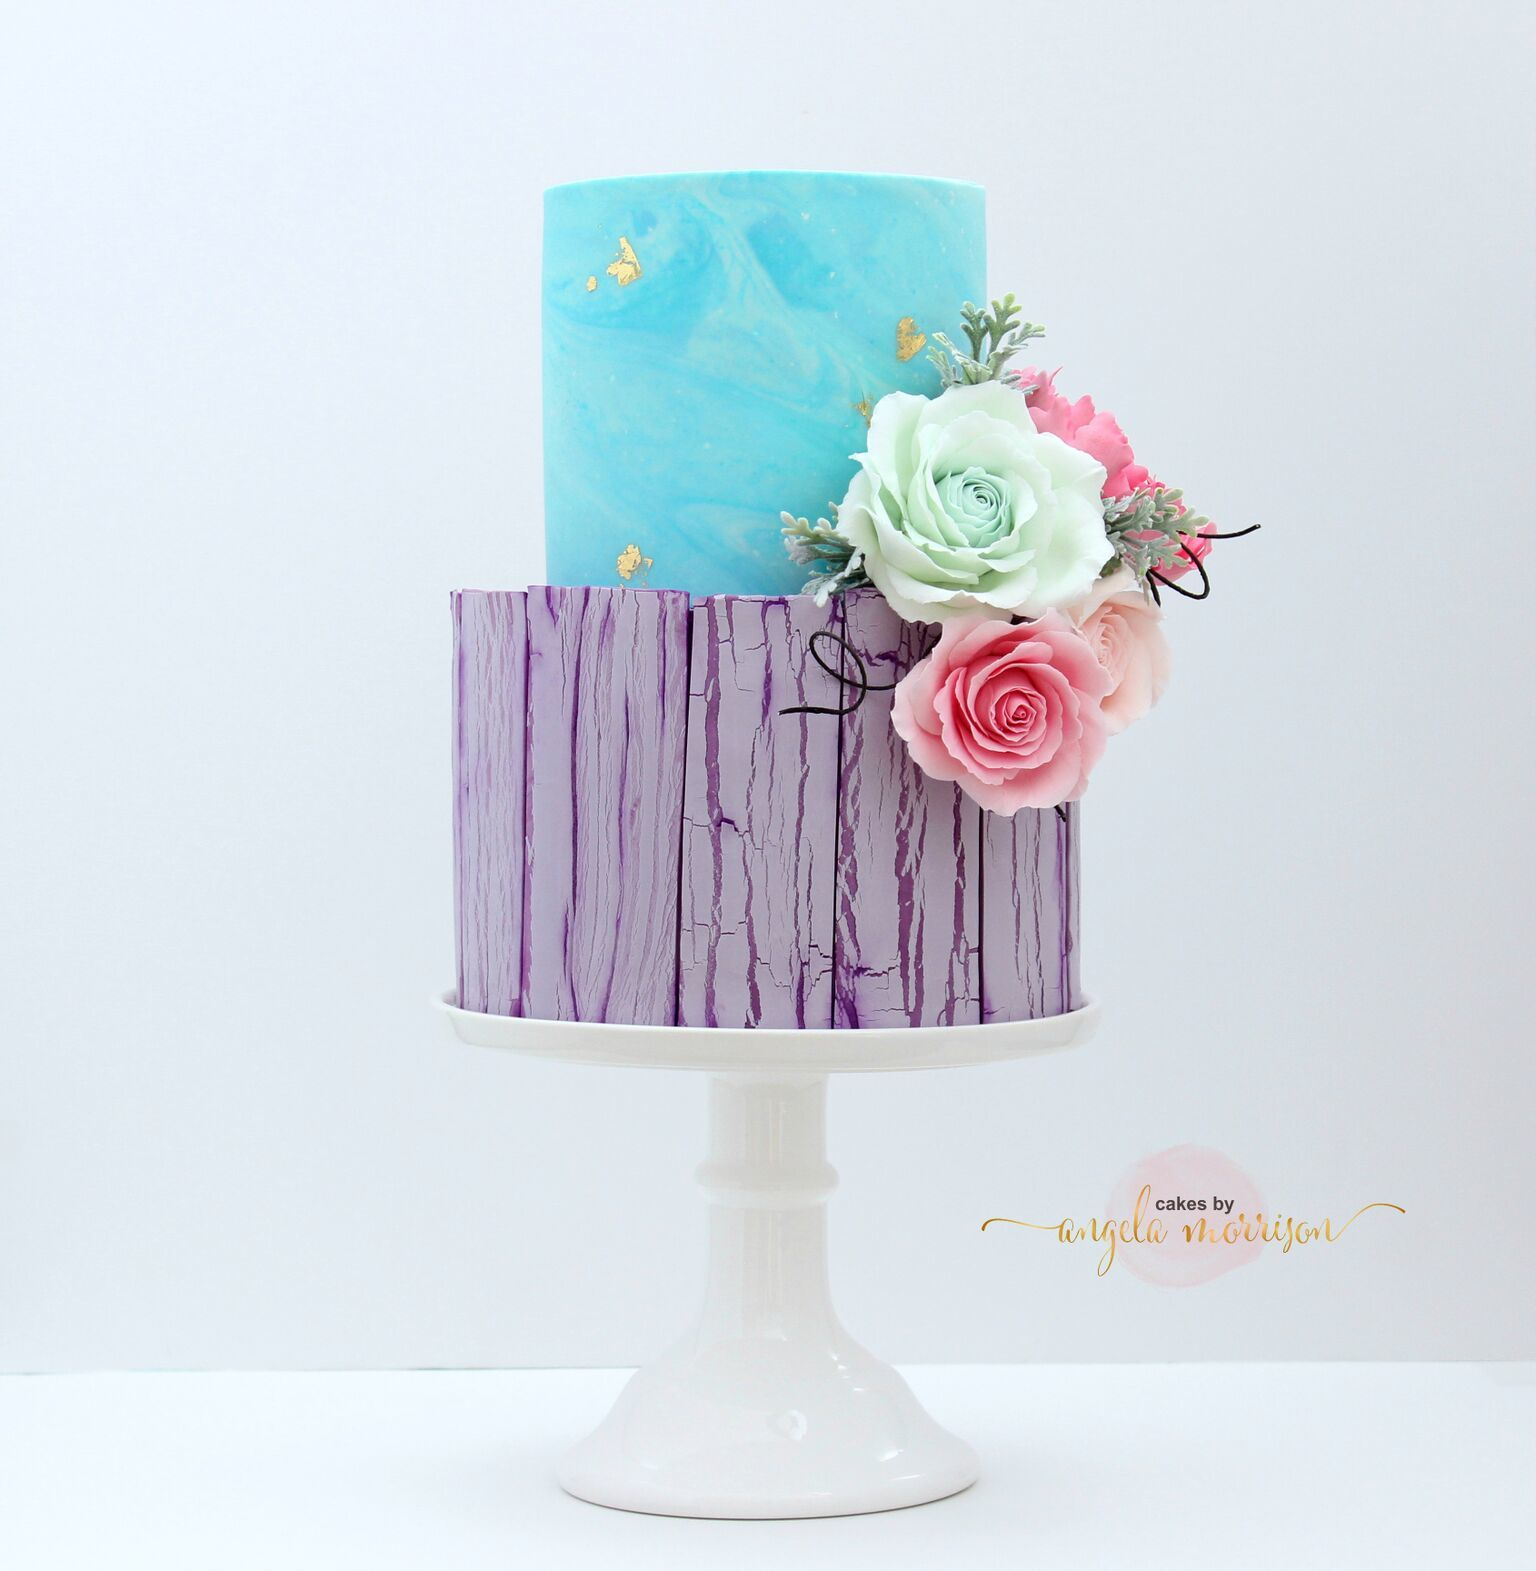 Lavender and blue fondant wedding cake